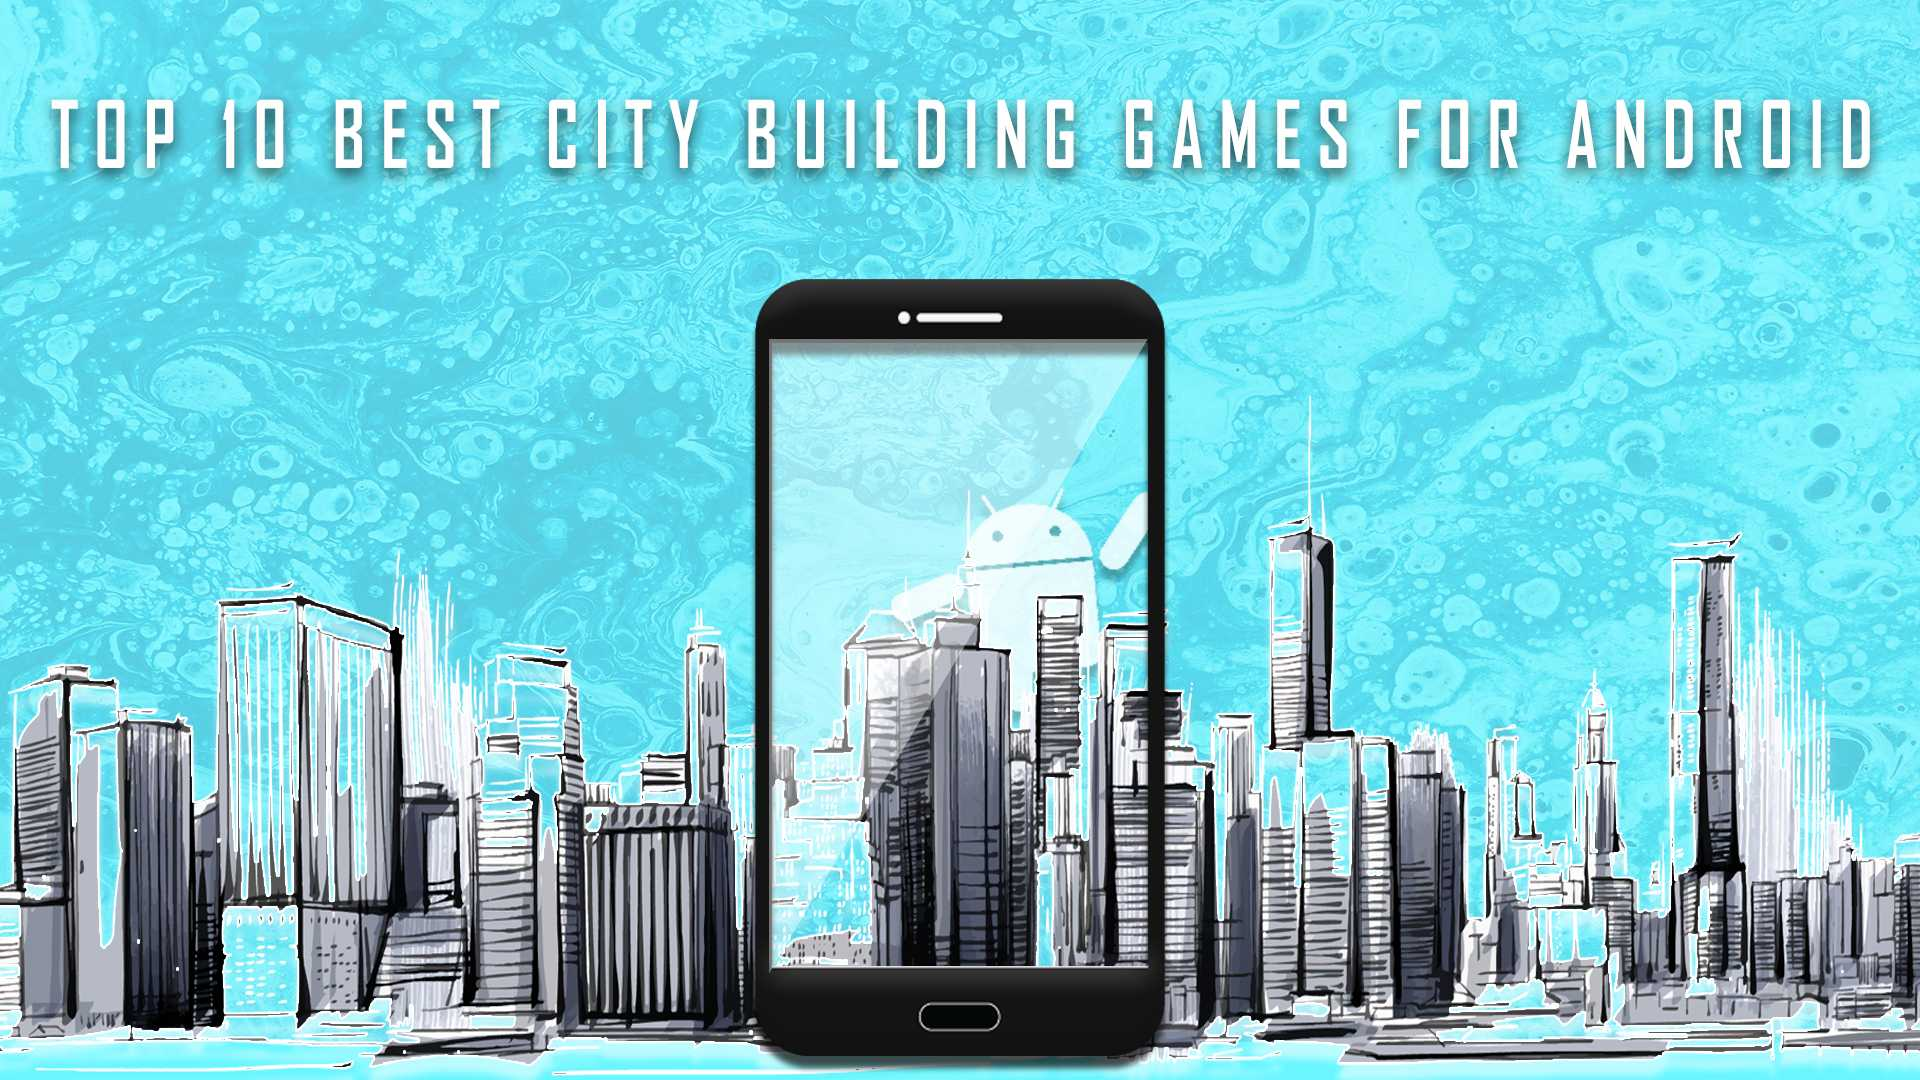 TOP 10 BEST CITY BUILDING GAMES FOR ANDROID